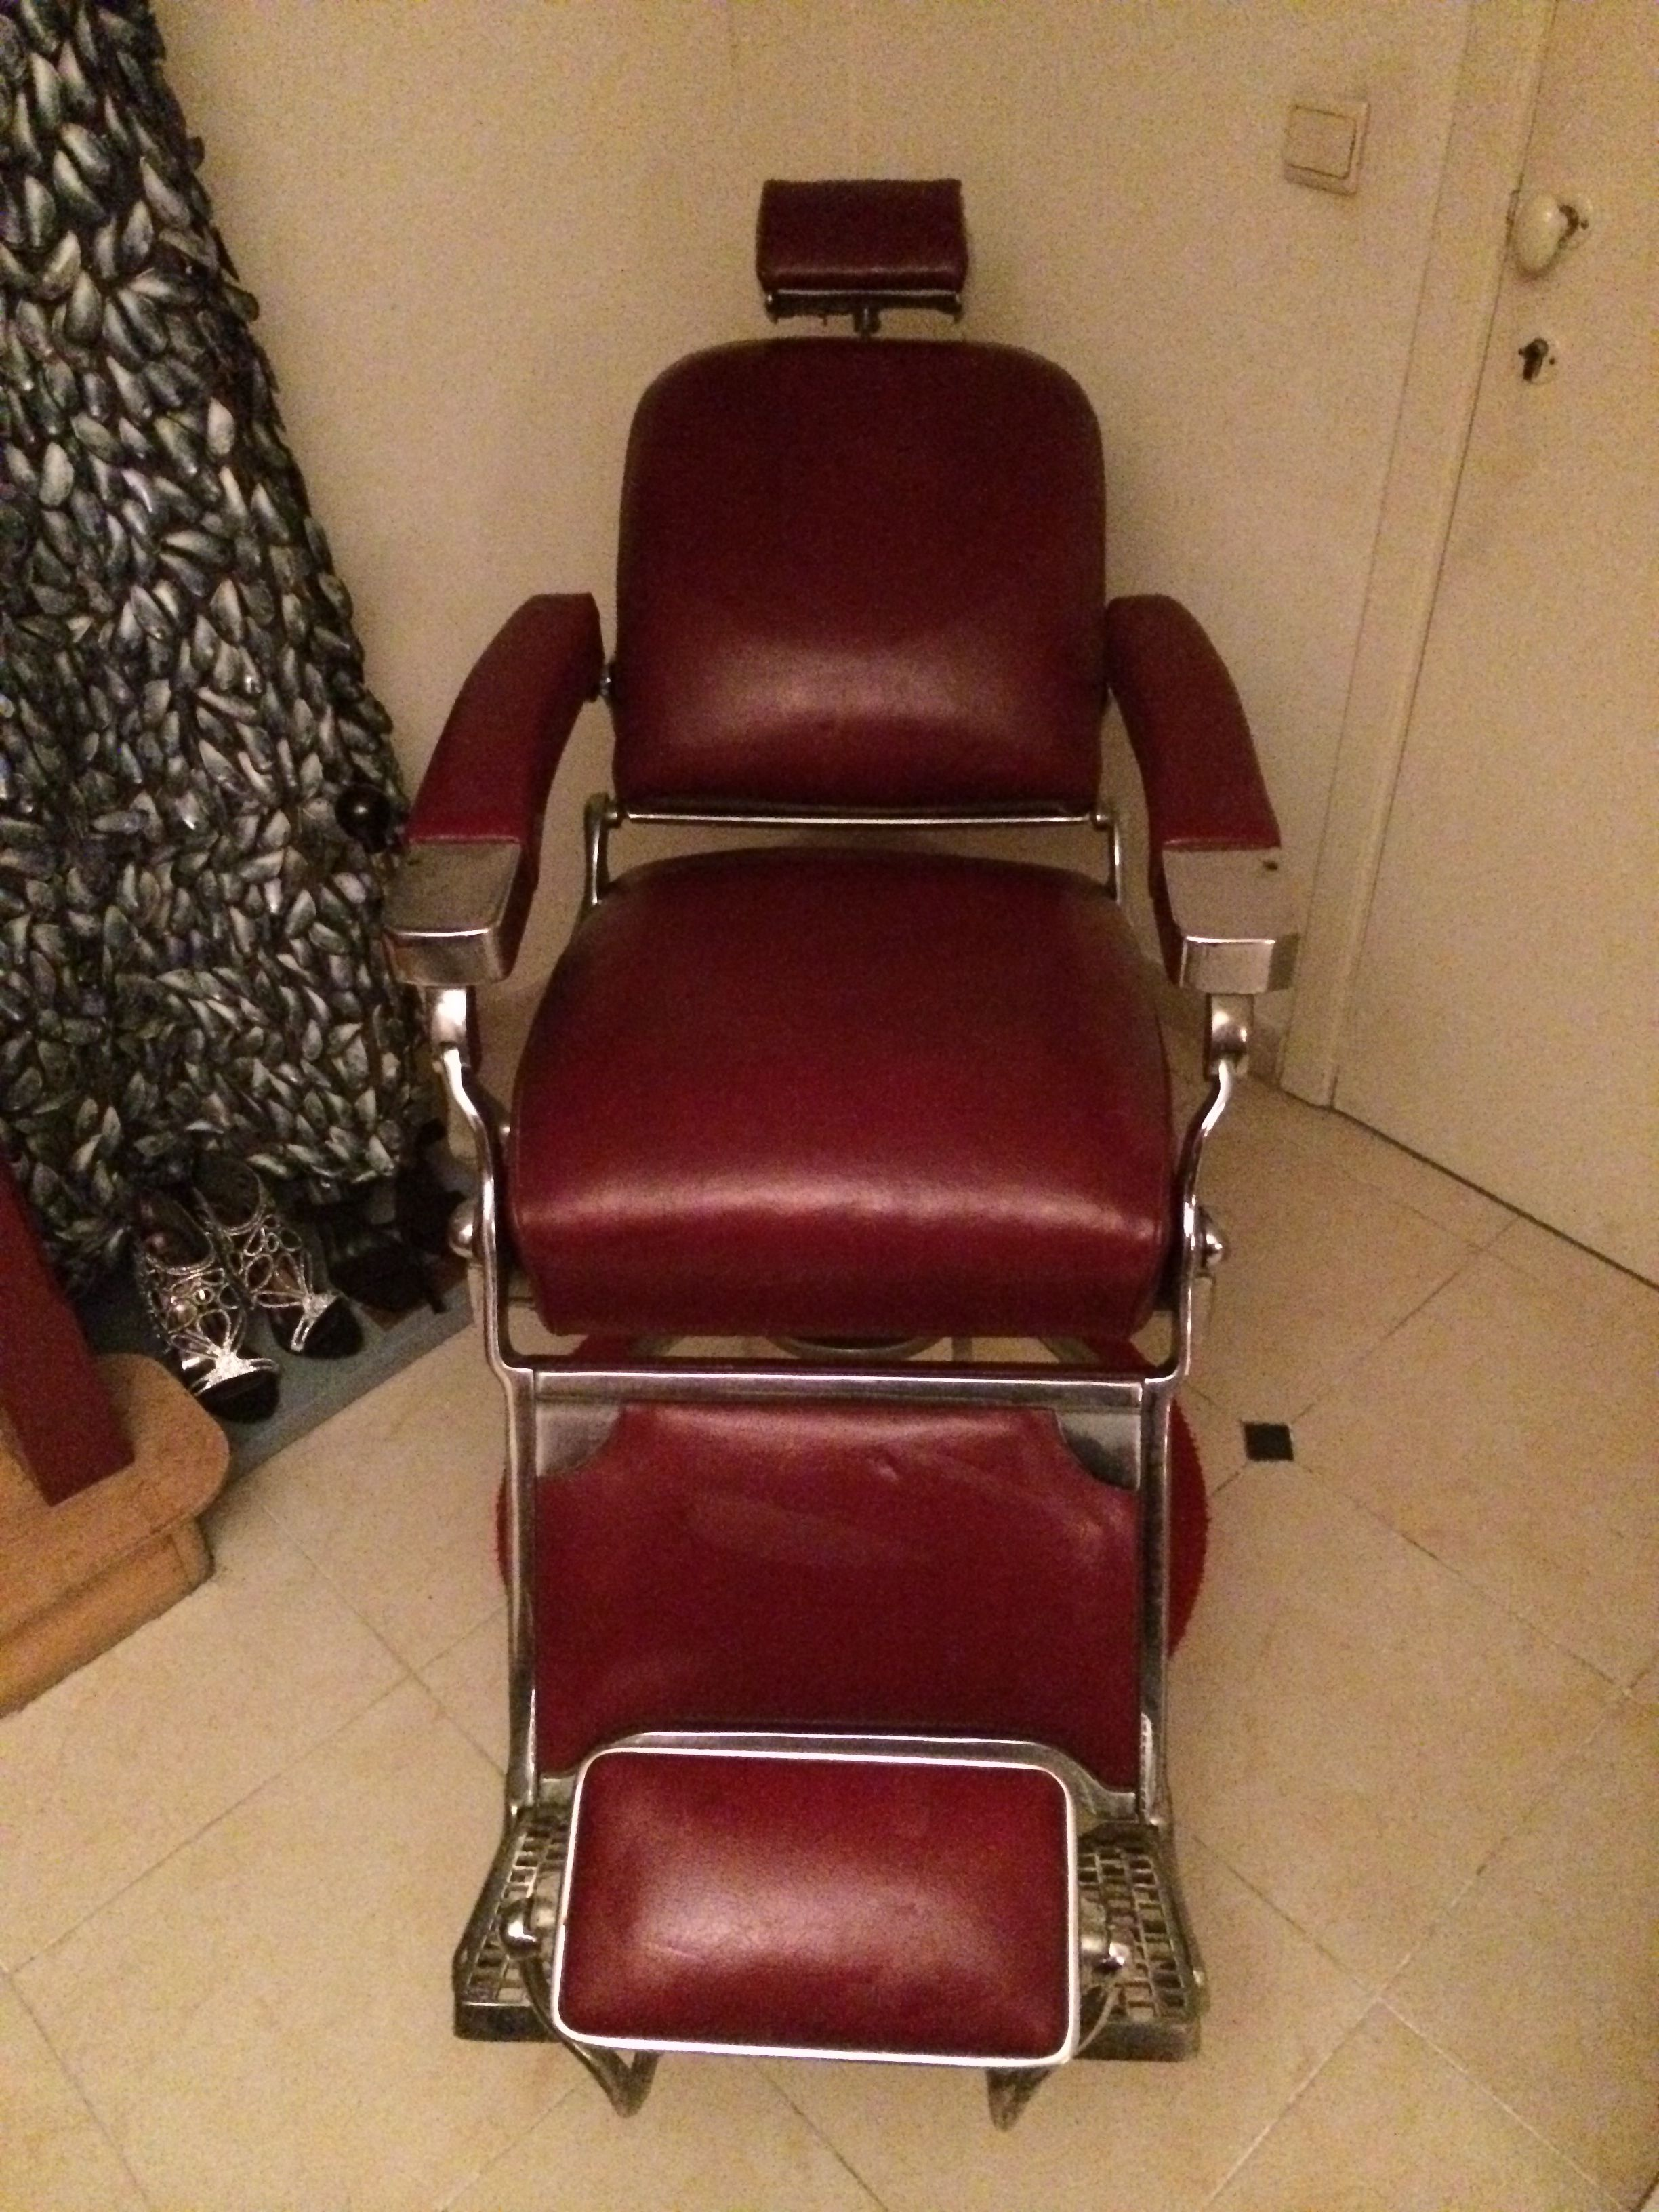 Theo Kochs Barber Chair From 1956 Barber Chair, Barber Shop, Barbershop